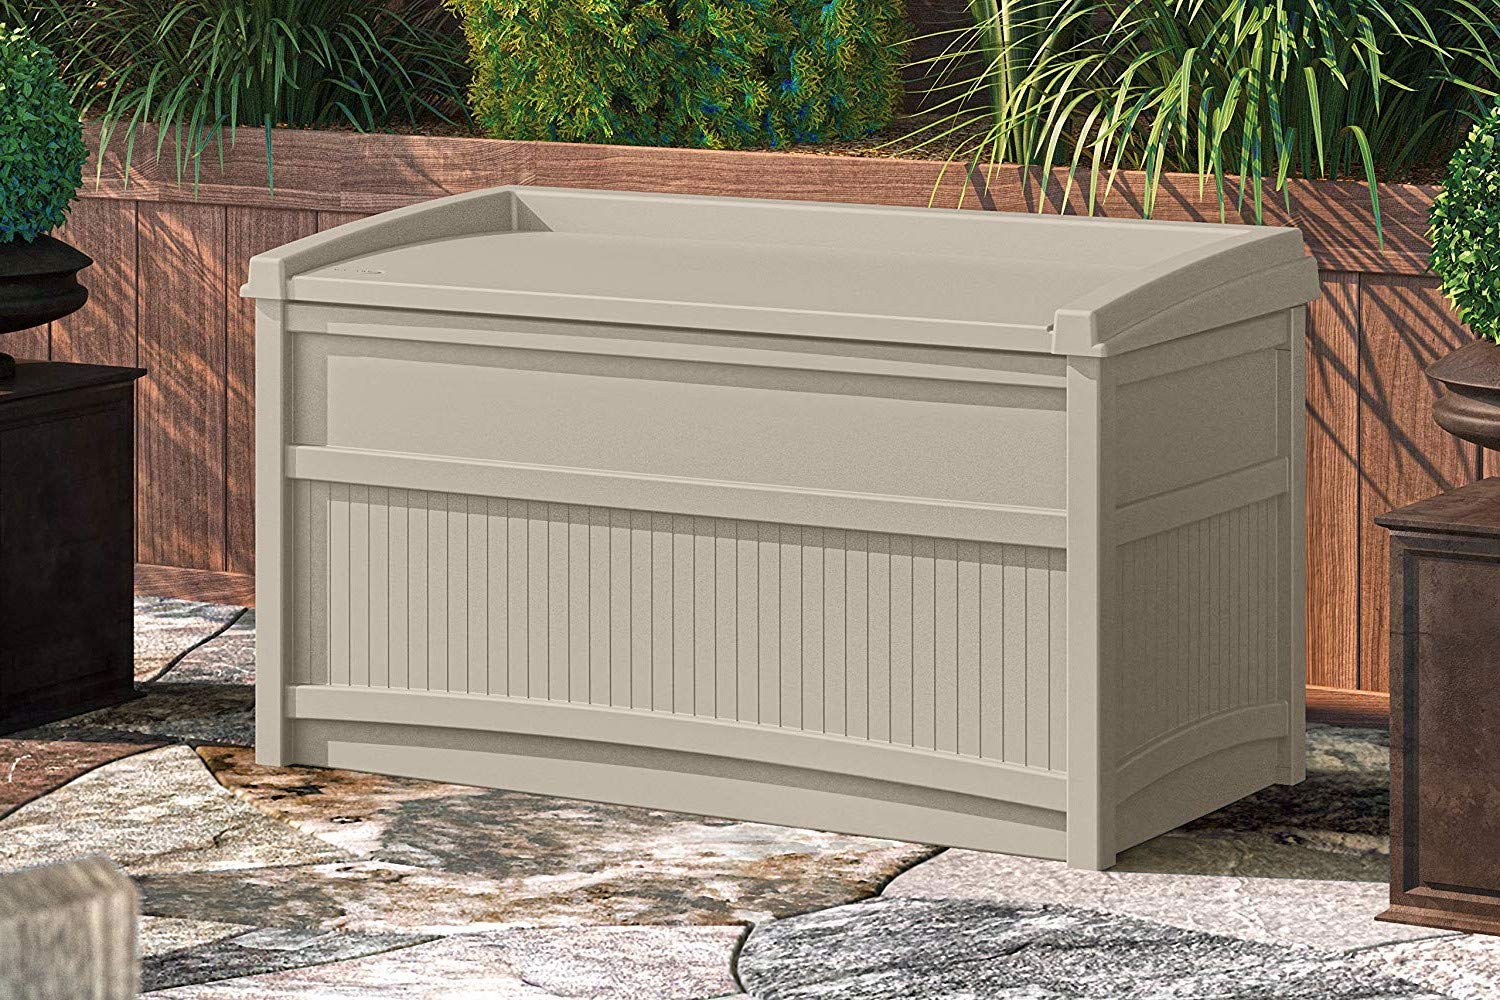 Patio Storage Cabinet Large 50 Gallon Storage Box Quality Waterproof Durable Coffee Table Sitting Bench for Indoor Outdoor Garden Backyard Home Container Furniture Weather Resistance & e-book by jnw